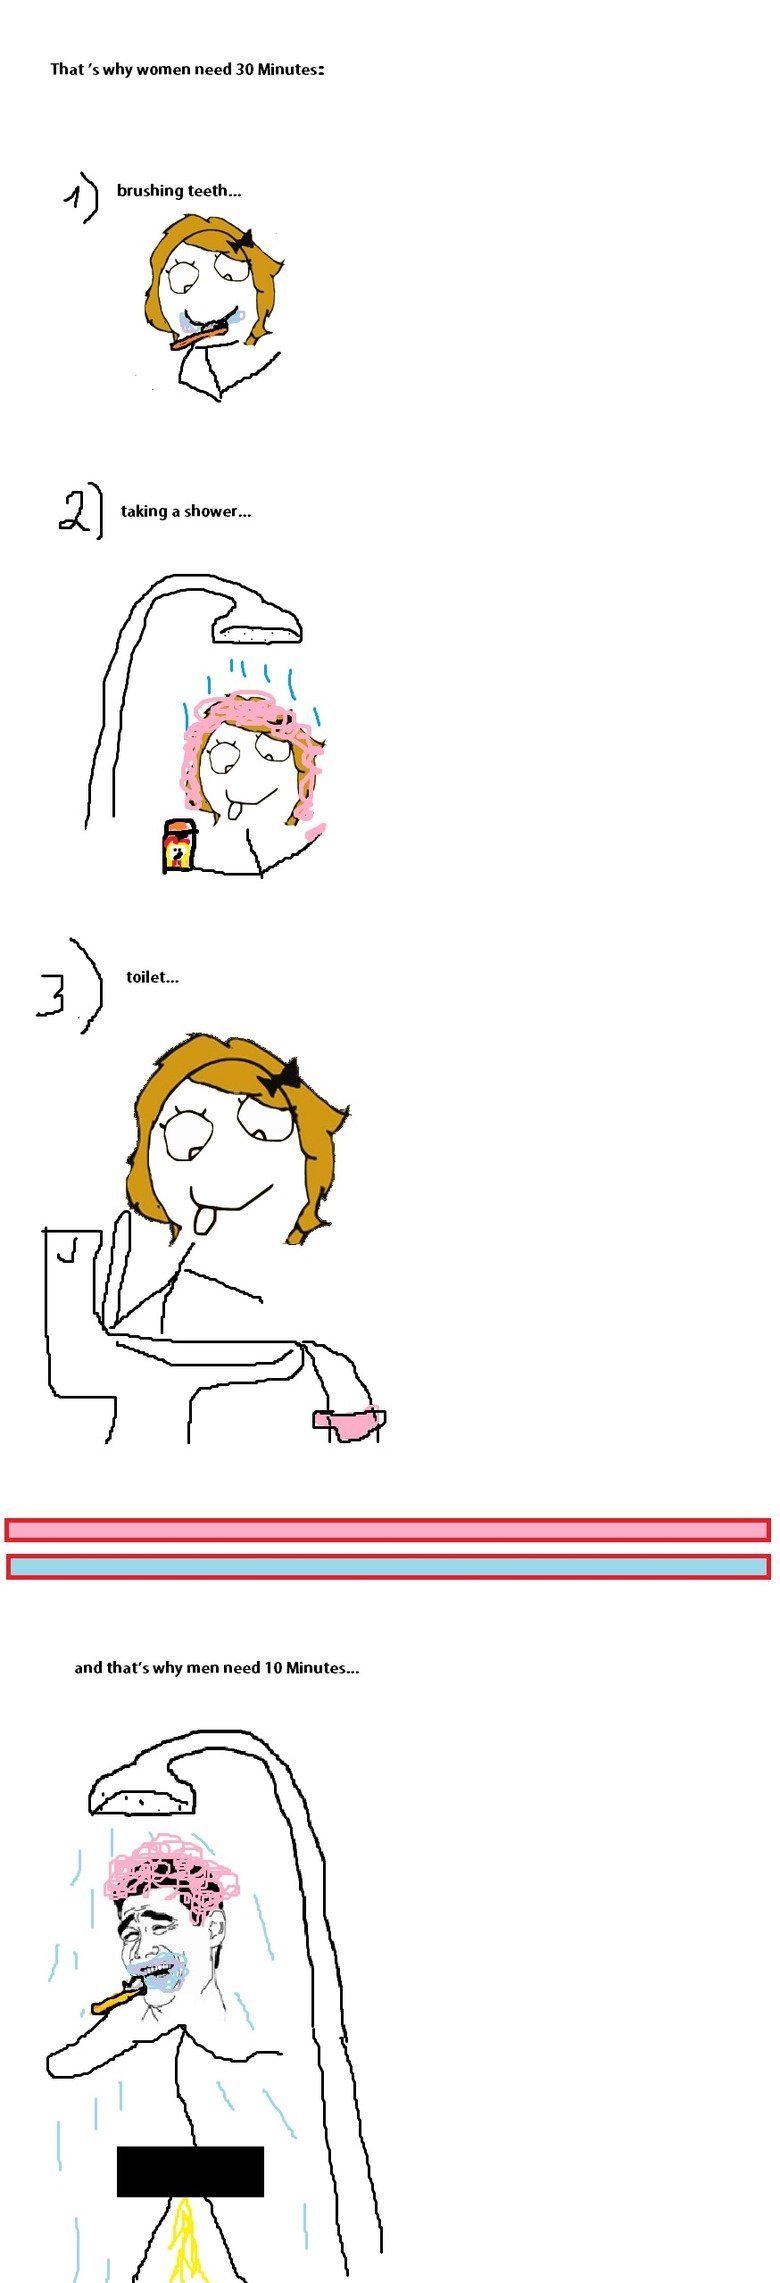 the bathroom.... that´s why!. That 's why women need 30 Minutes: 4) brushing teeth... R] taking a shower... and that' s why men need 10 Minutes.... Who goes to the bathroom AFTER they shower? That defeats the purpose of showering....